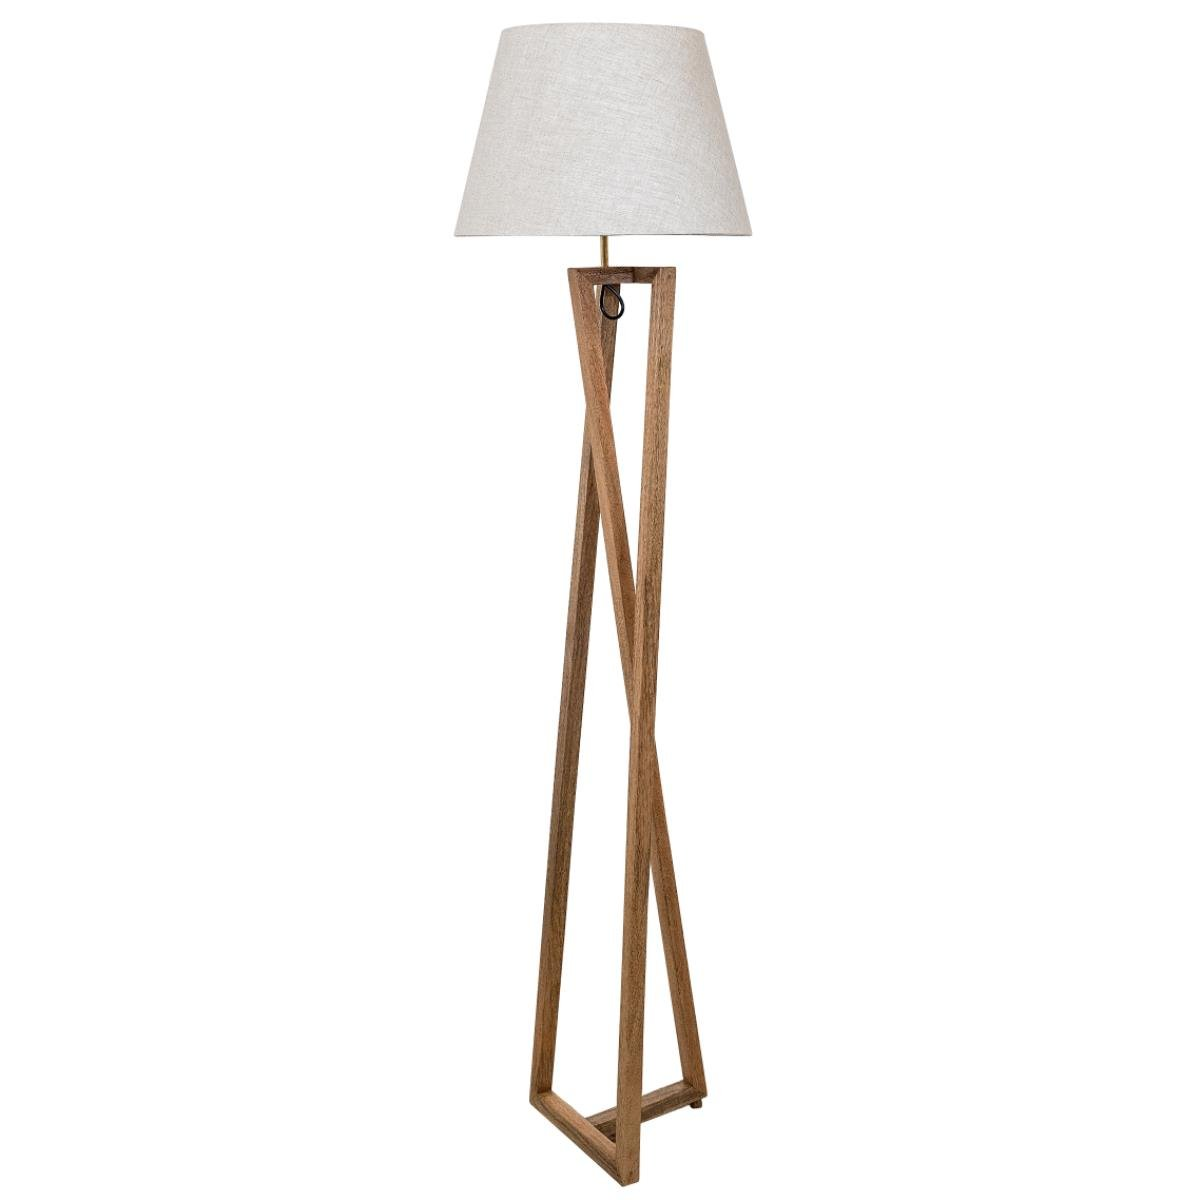 Adina, Asymmetric Tripod, Contemporary Wooden Floor Lamp